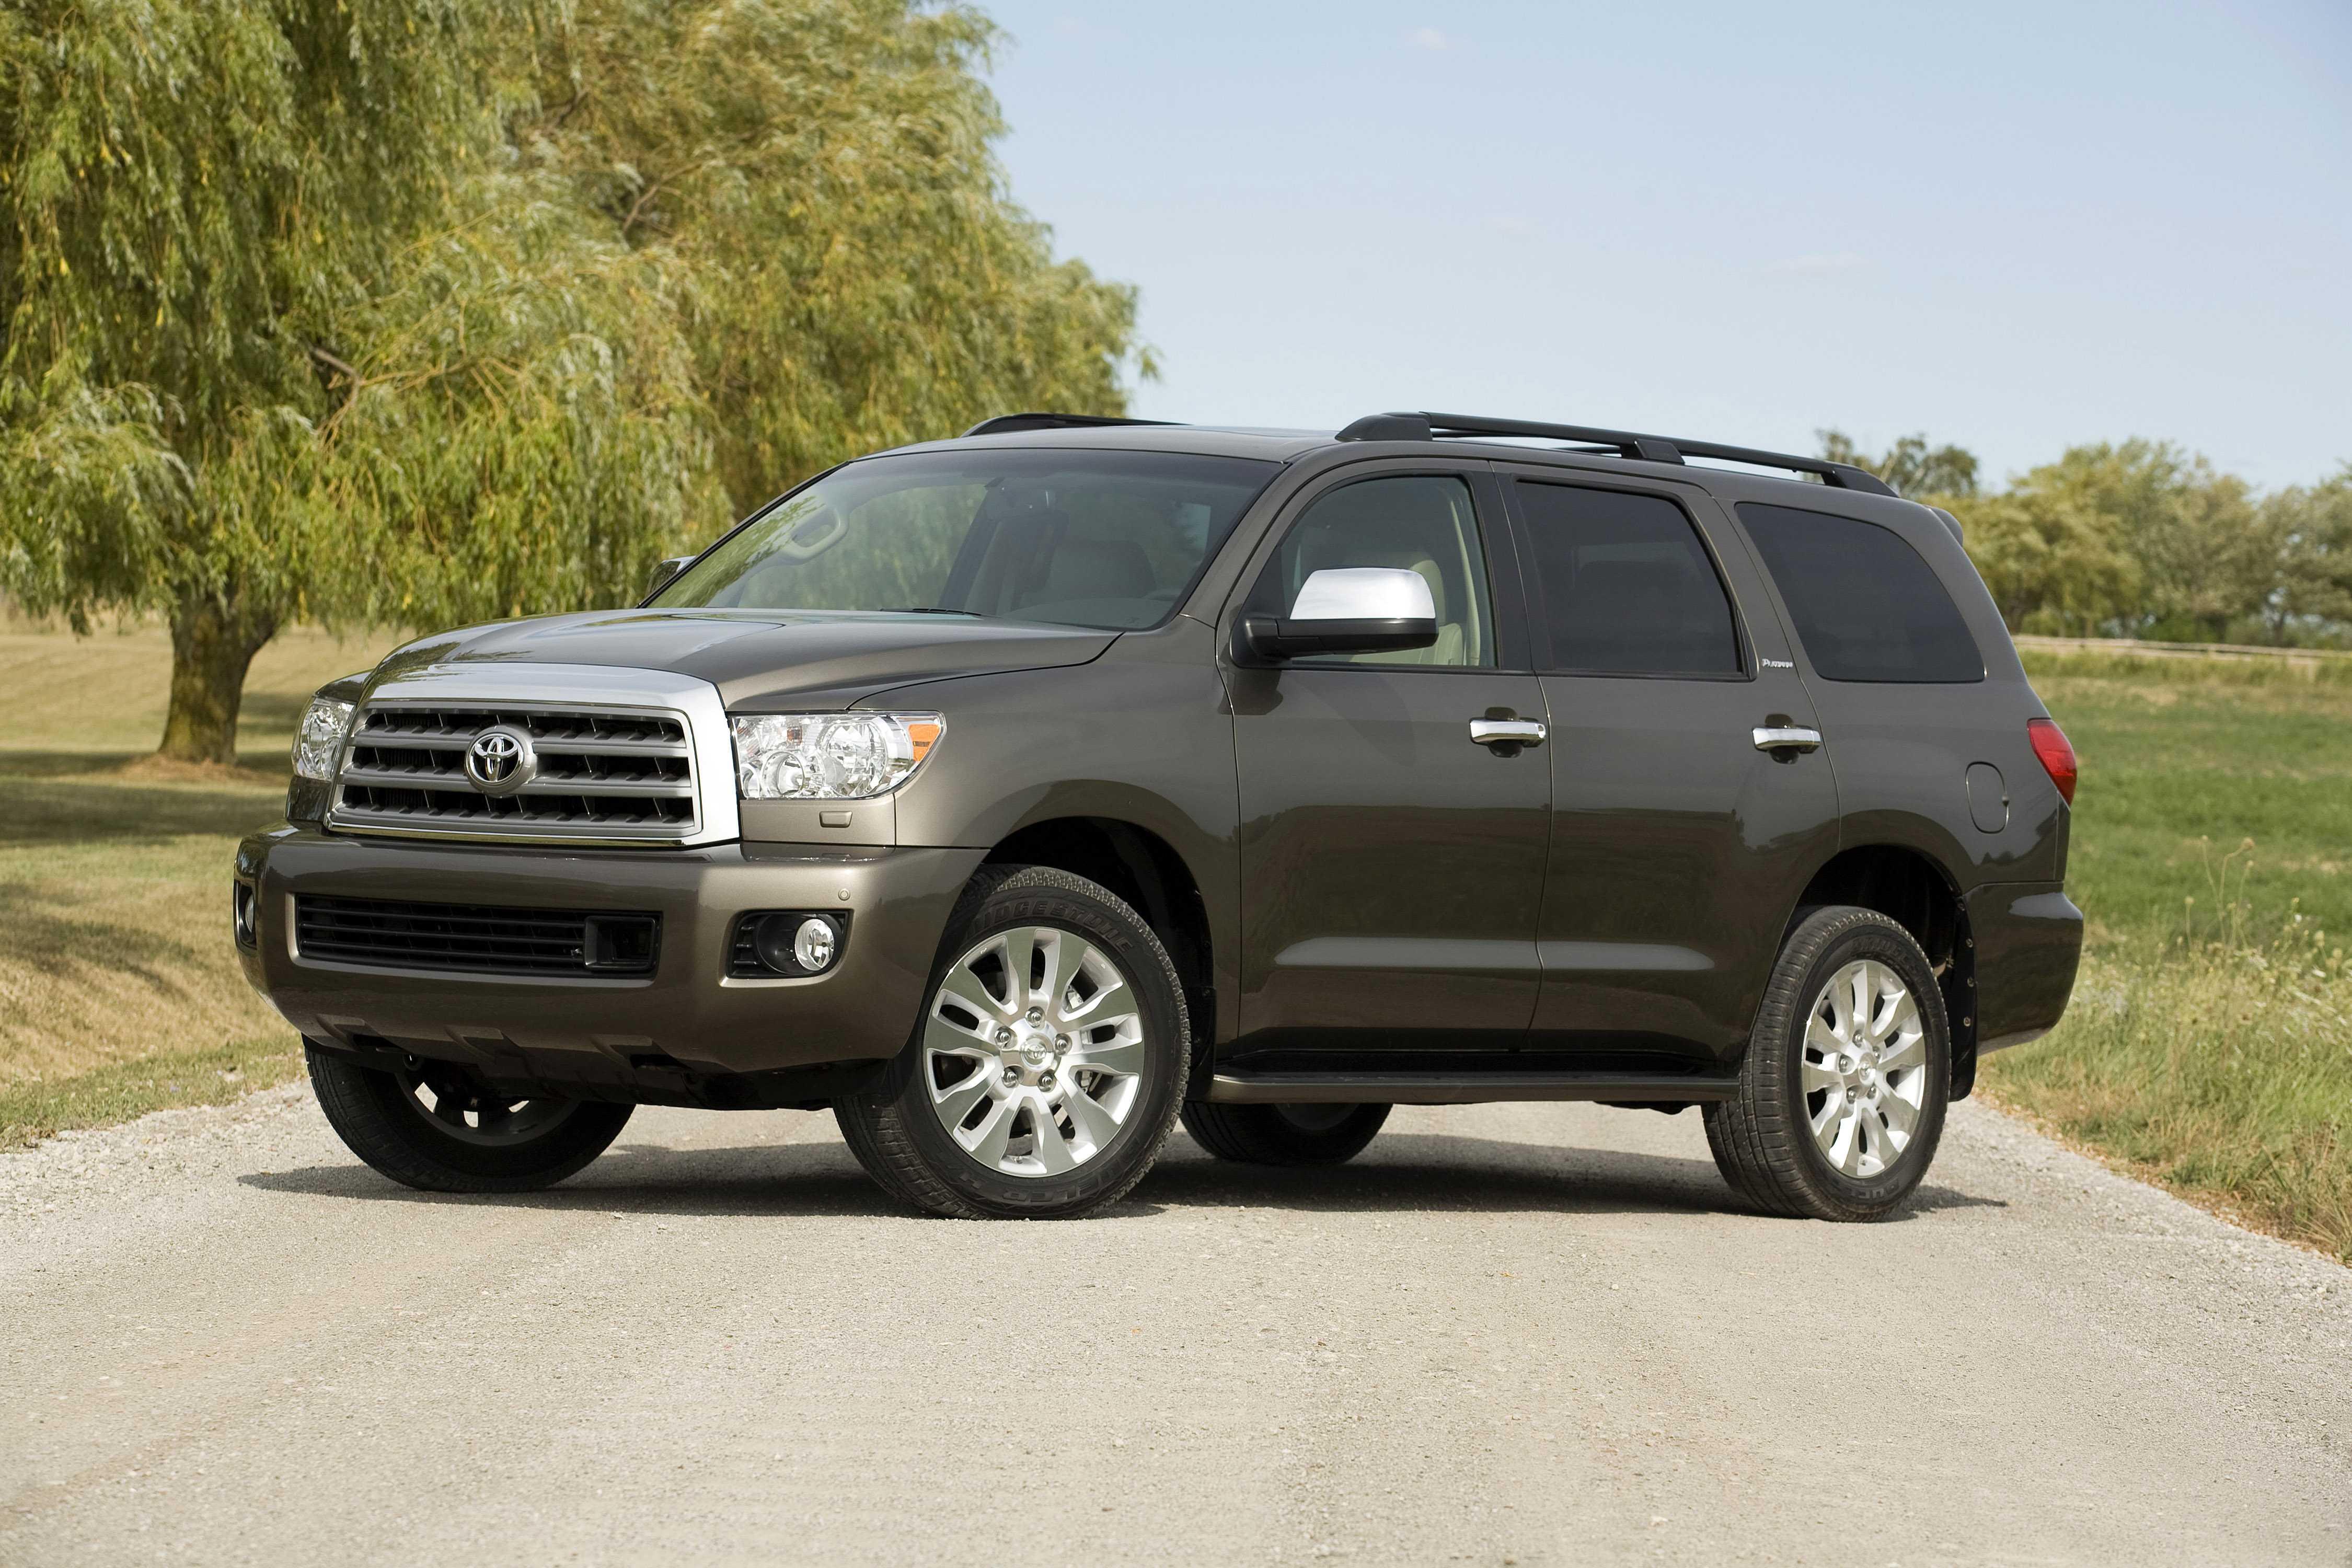 seq reviews new htm jeff offer in toyota oem of wyler now price offers lease at and sequoia on sale finance clarksville